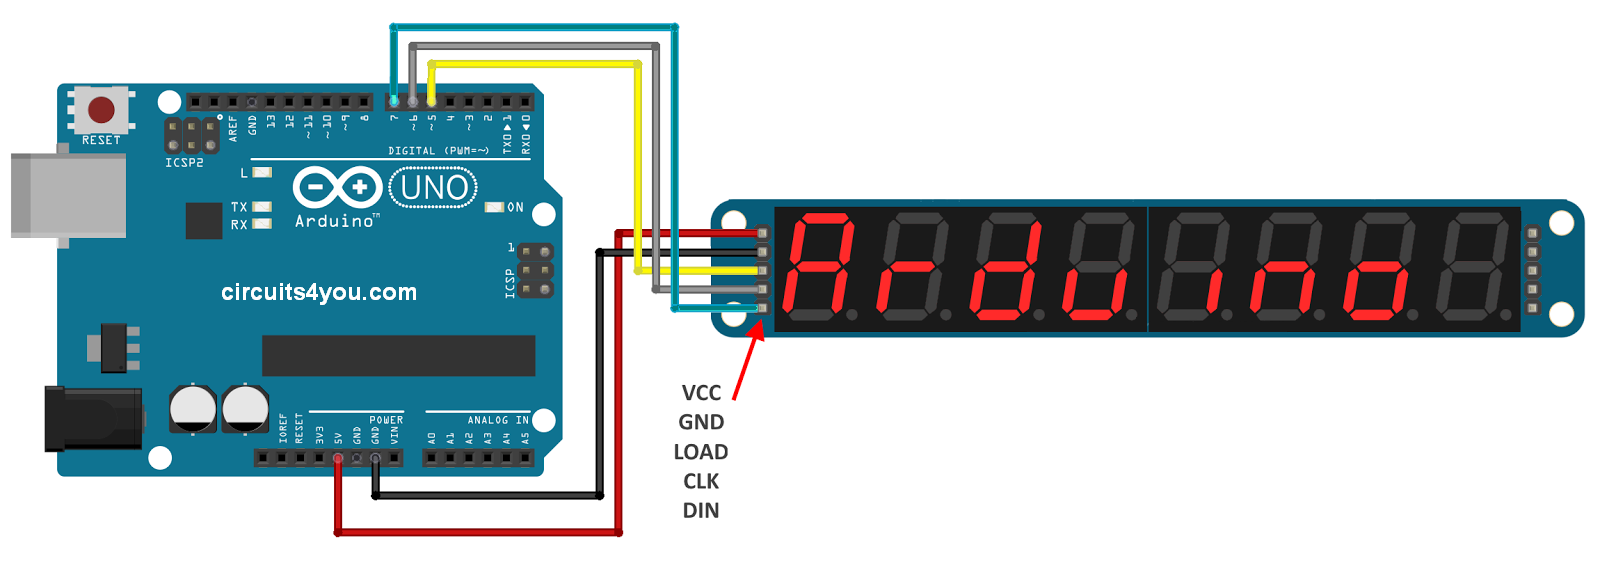 MAX7219 Display Module Connections with Arduino